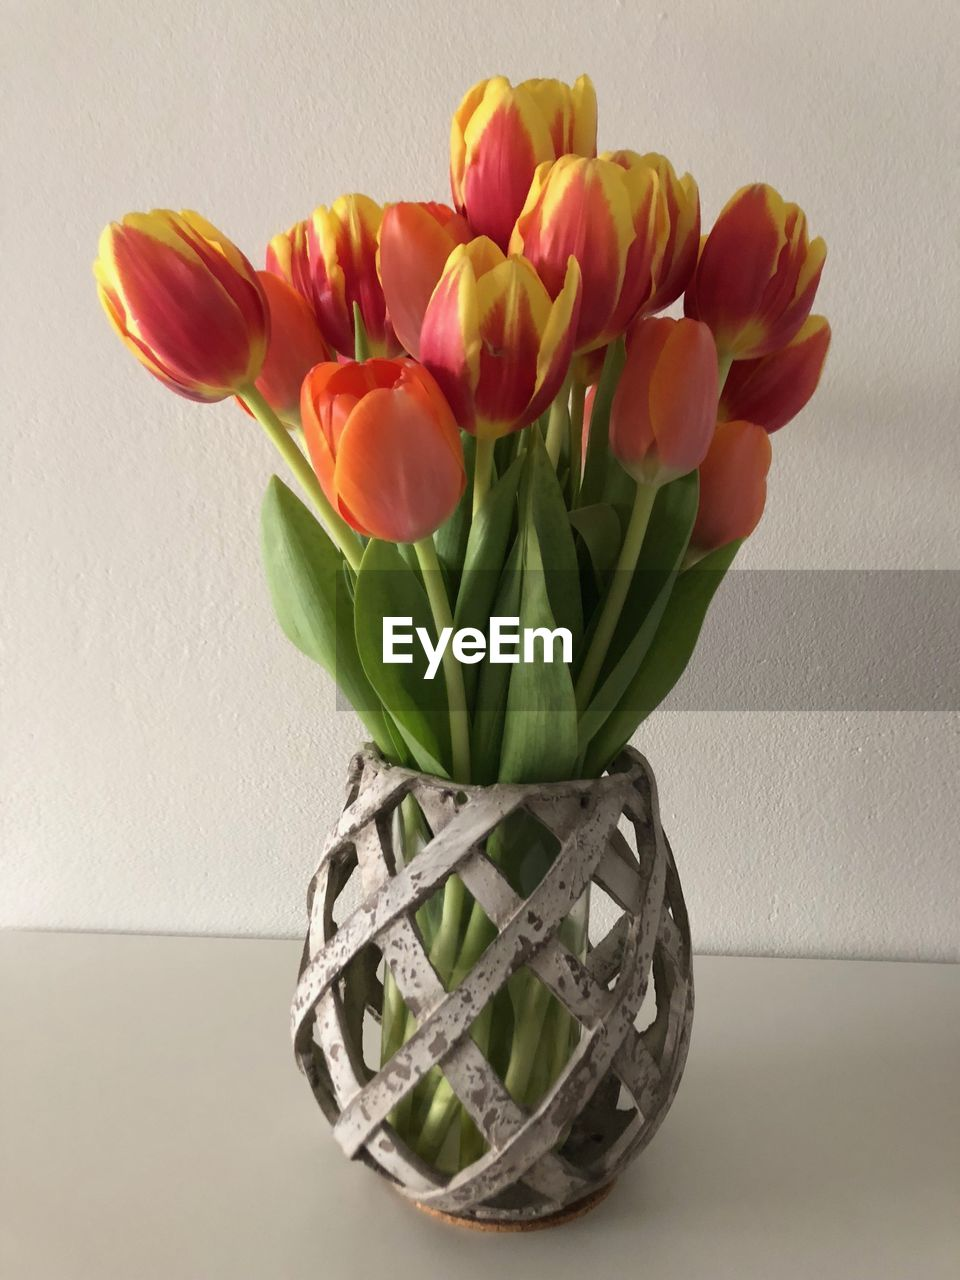 flower, flowering plant, plant, vase, freshness, beauty in nature, fragility, vulnerability, indoors, table, flower head, close-up, inflorescence, tulip, petal, nature, no people, decoration, still life, flower arrangement, bunch of flowers, bouquet